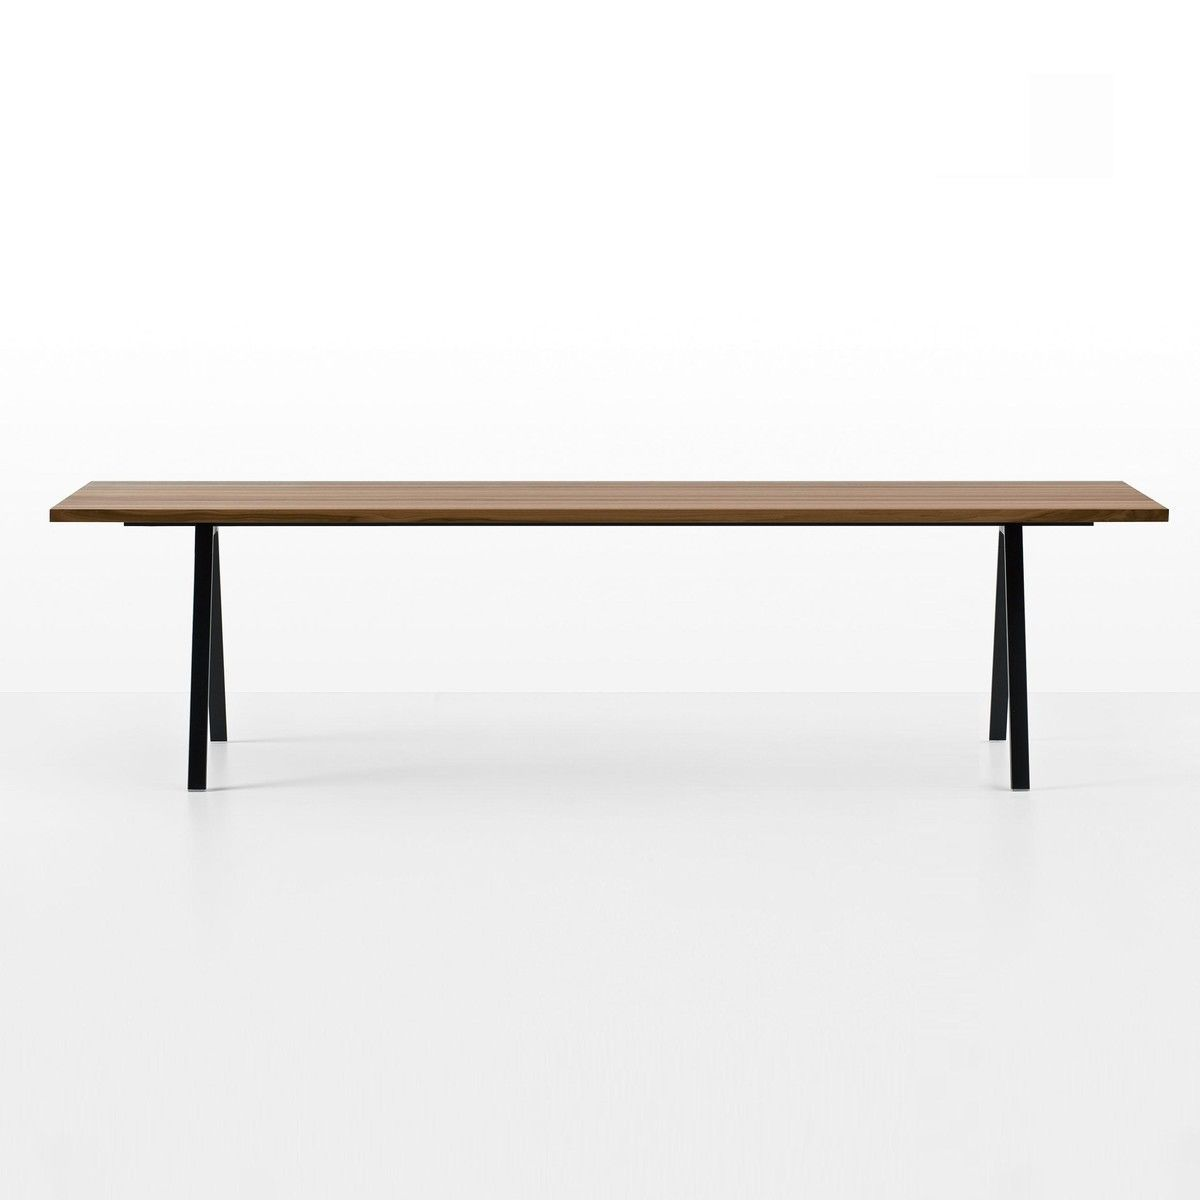 Neat wood table kristalia for Table kristalia